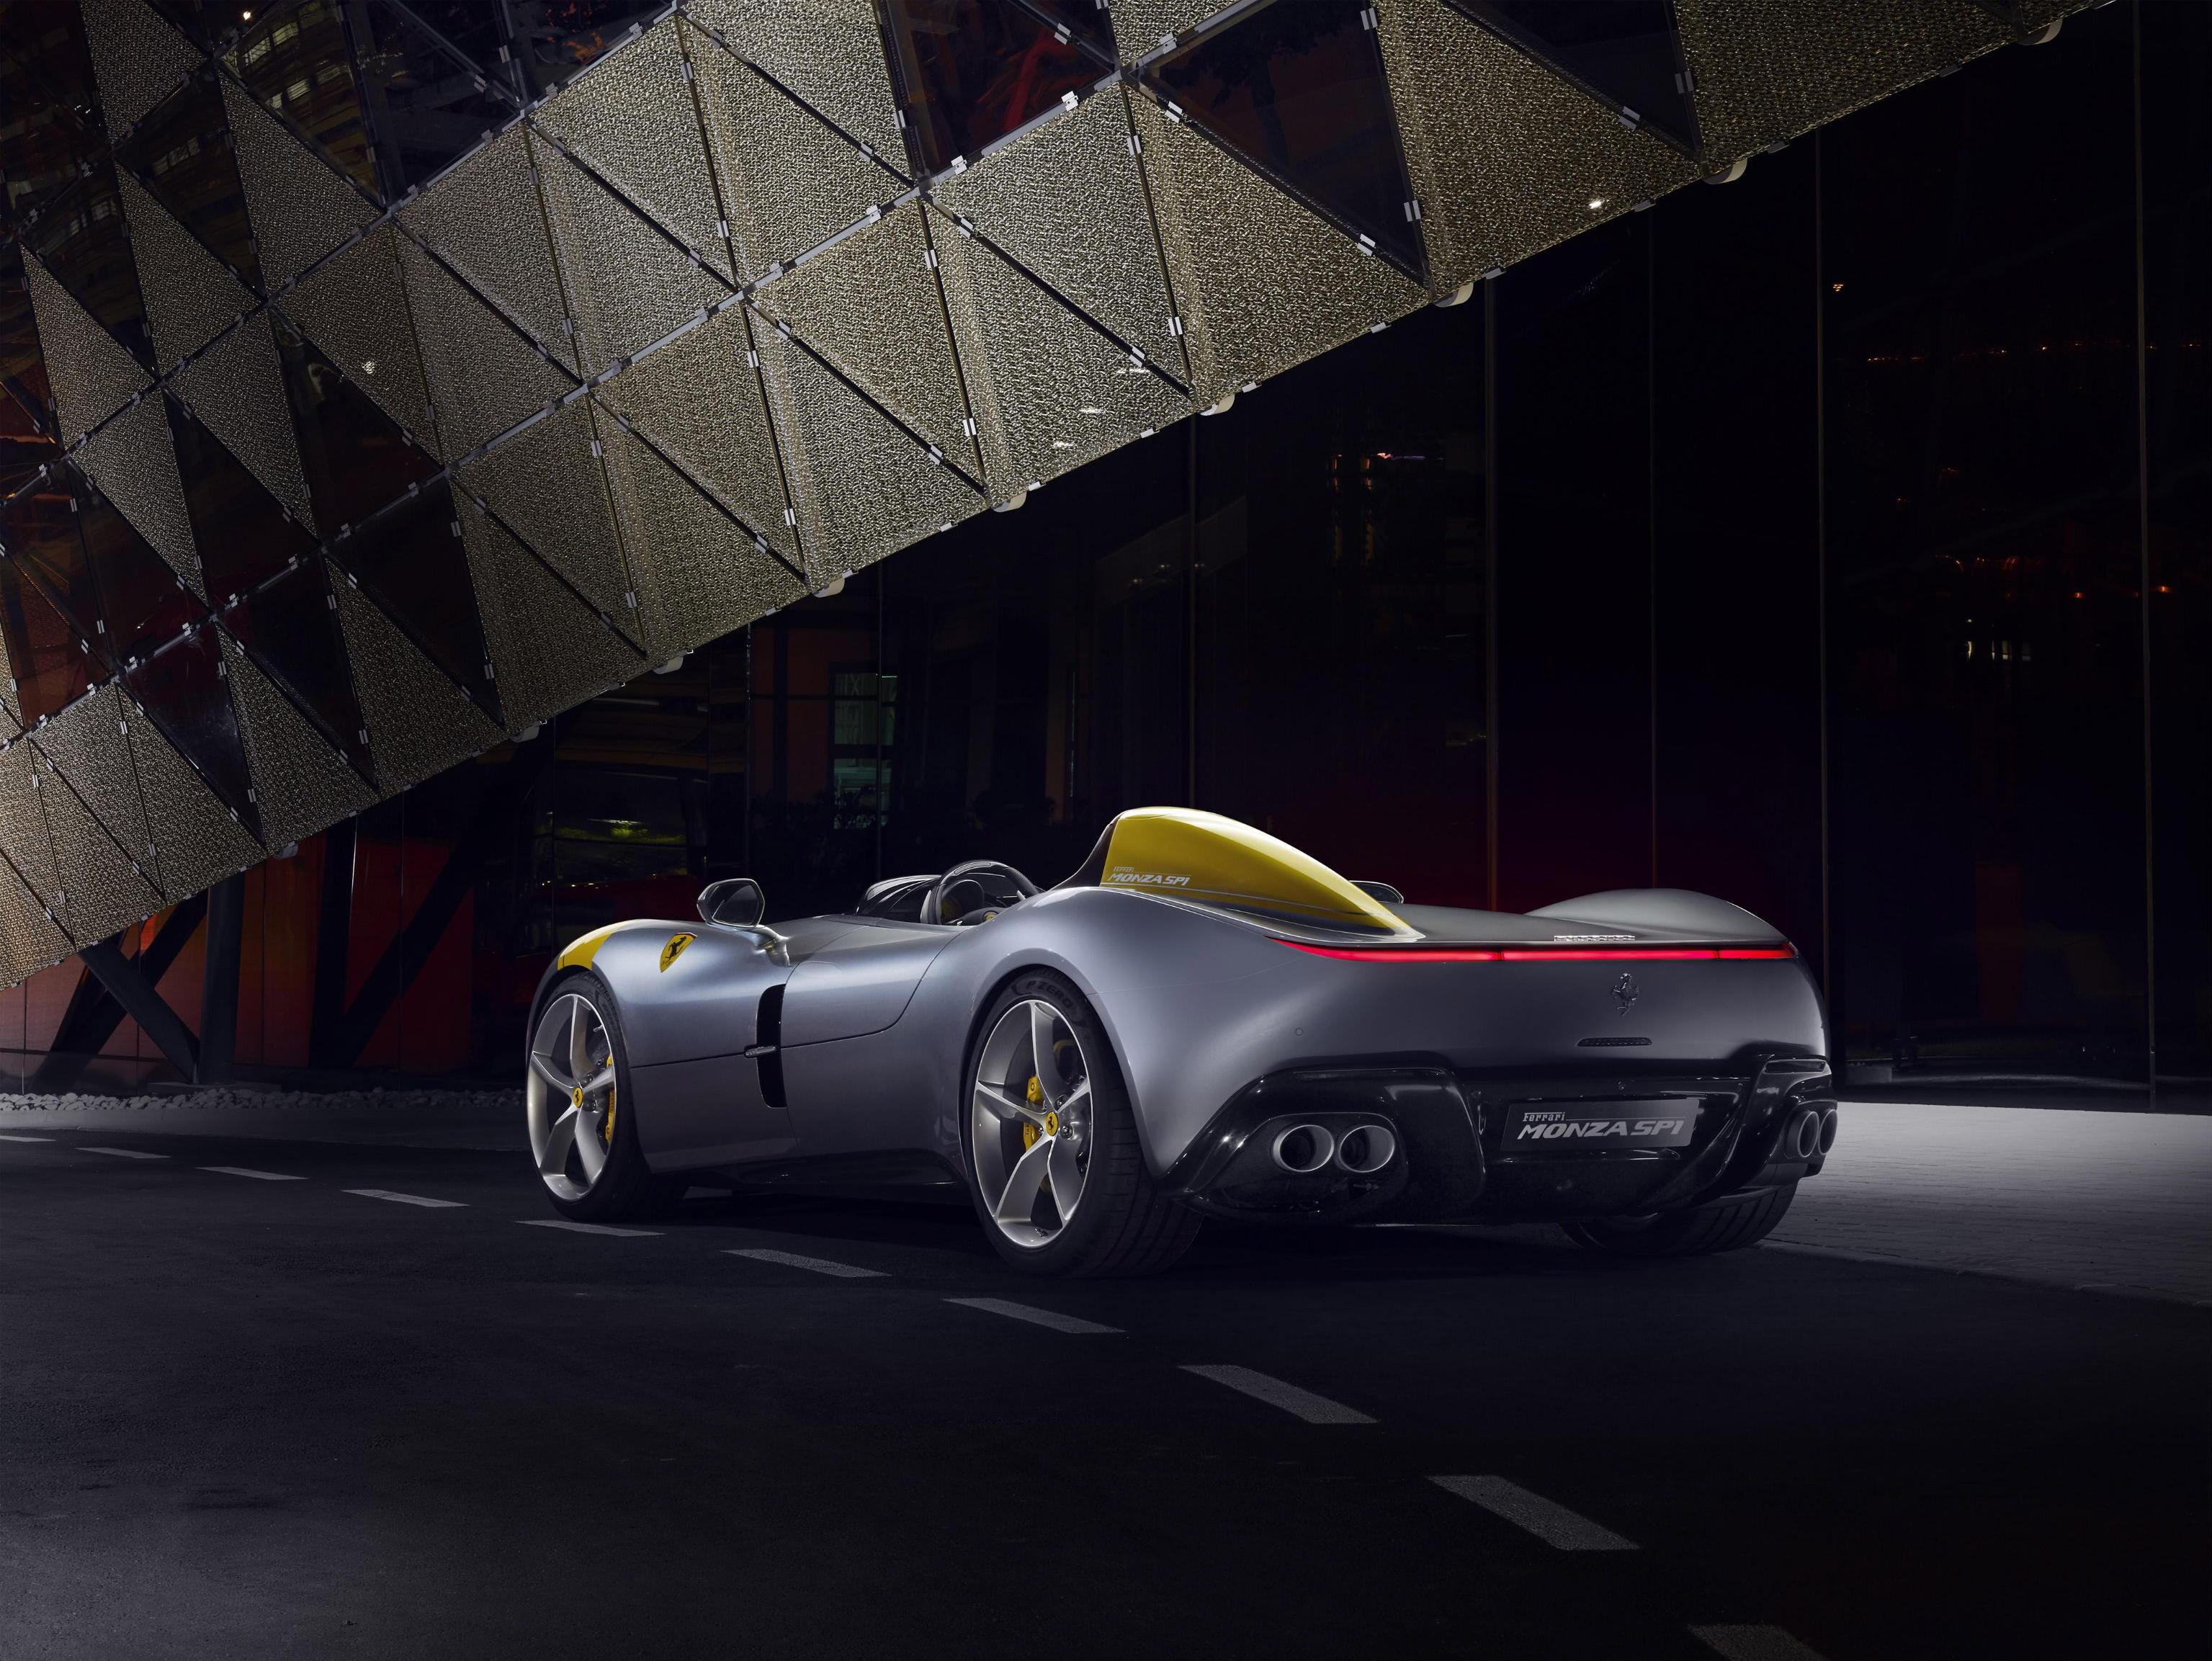 The bodyshell of both cars is made from carbon-fiber to reduce weight.